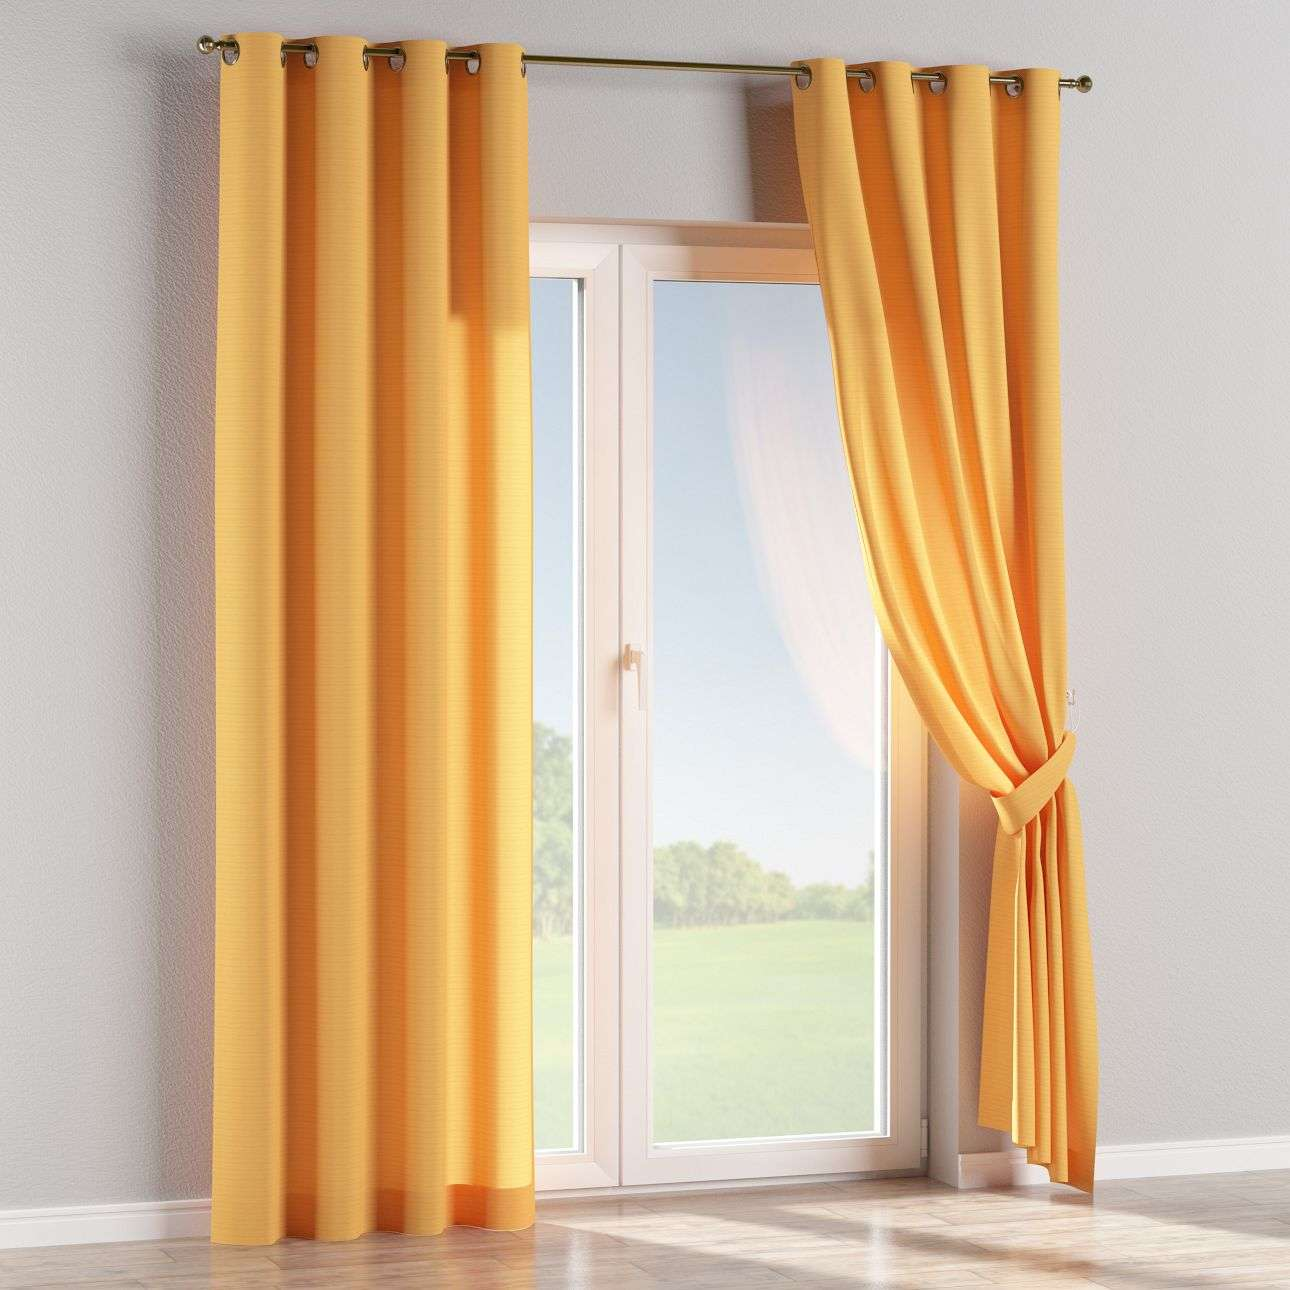 Eyelet curtains 130 x 260 cm (51 x 102 inch) in collection Jupiter, fabric: 127-46